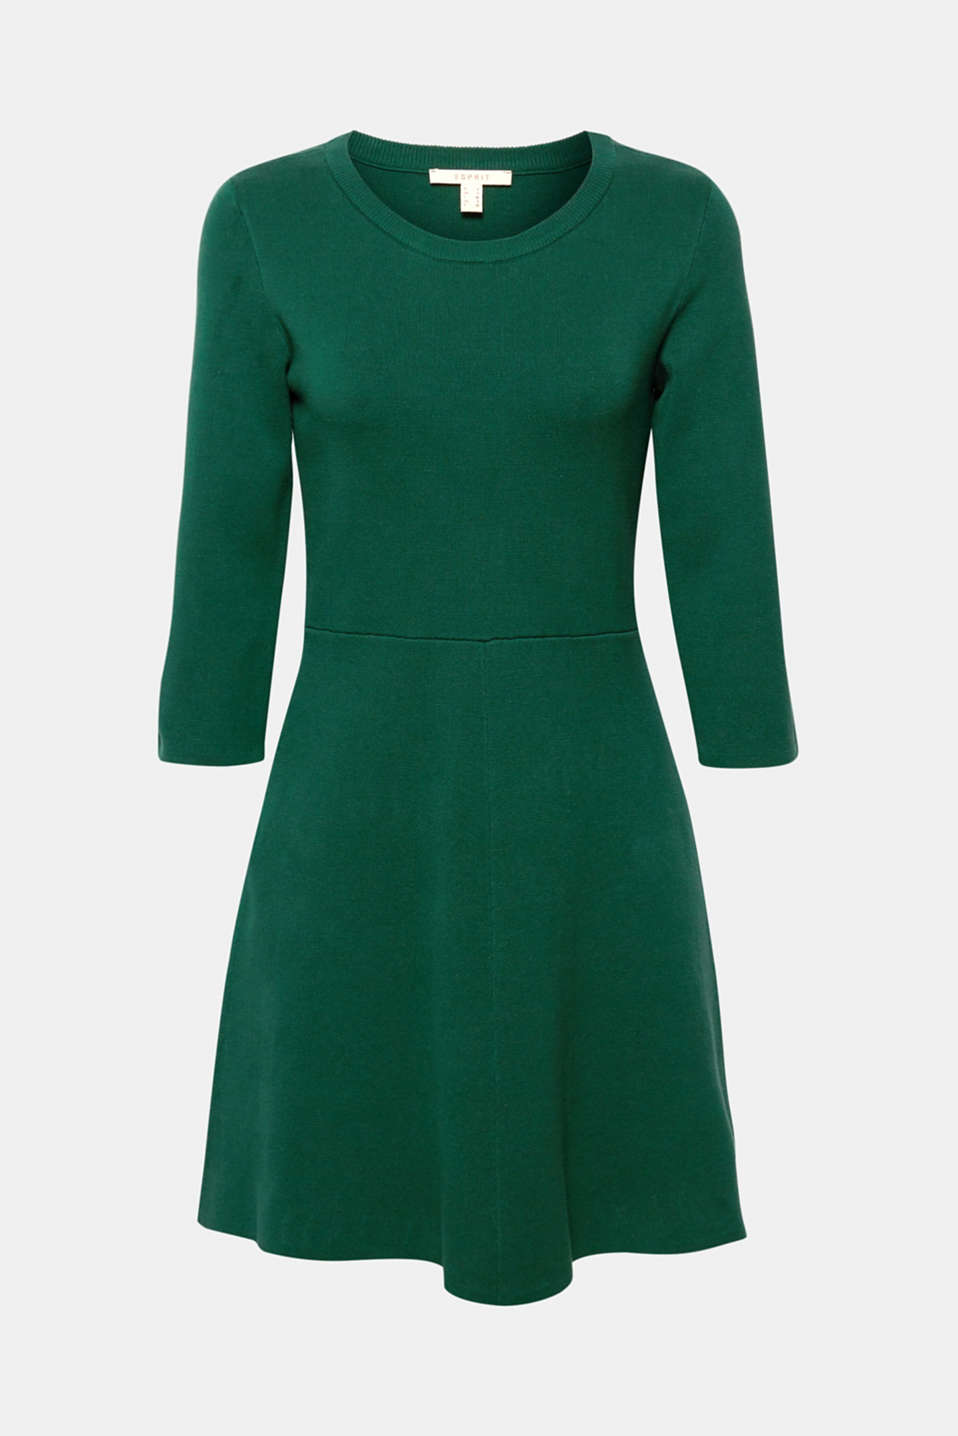 Compact knit dress in an A-line silhouette, BOTTLE GREEN, detail image number 6